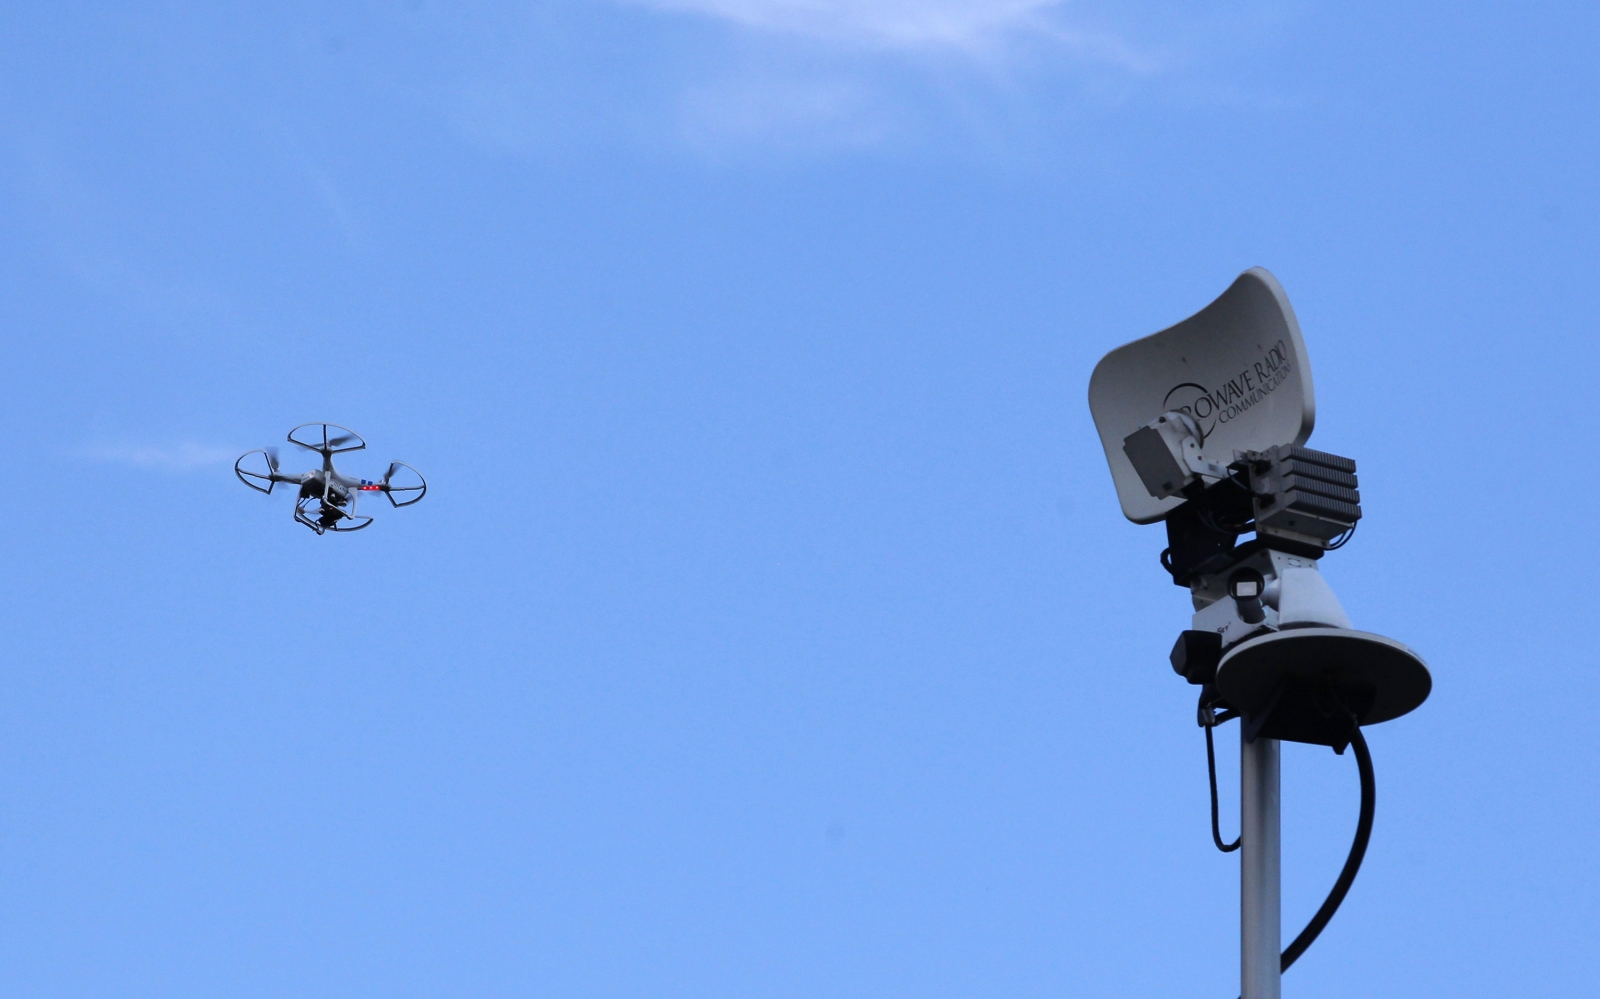 A drone flying near a residential TV antenna